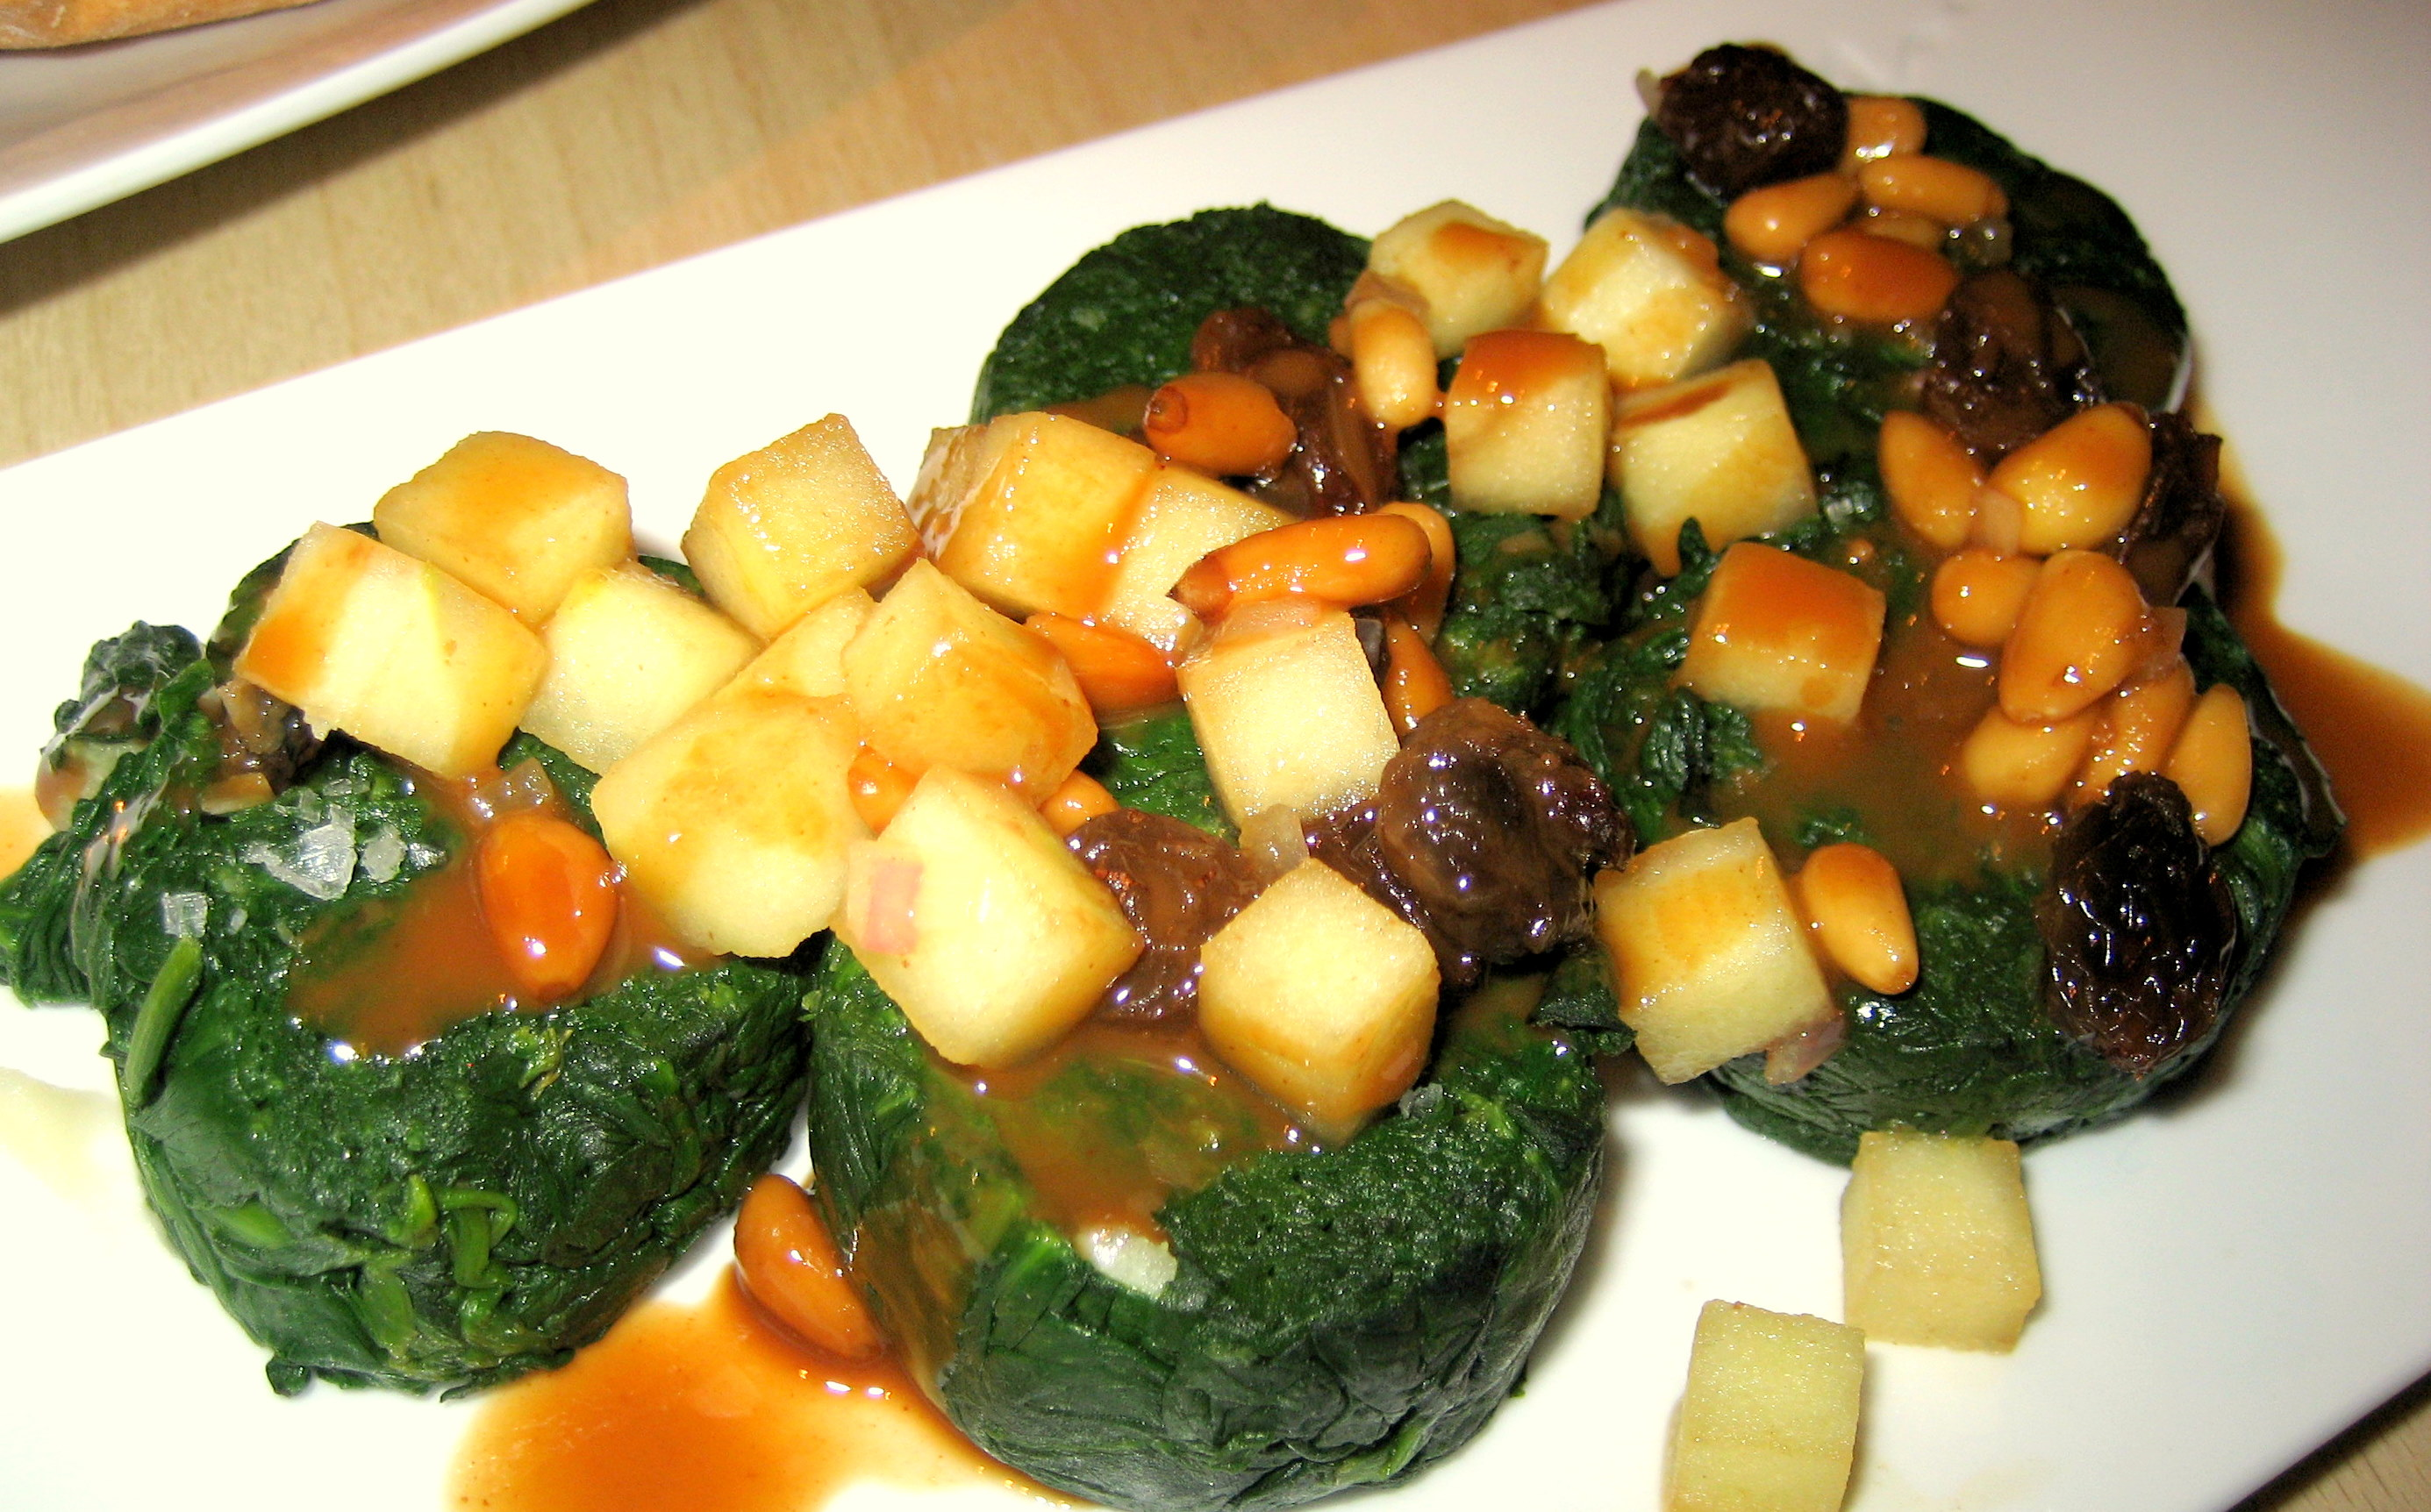 Spinach with Apples and Pine Nuts